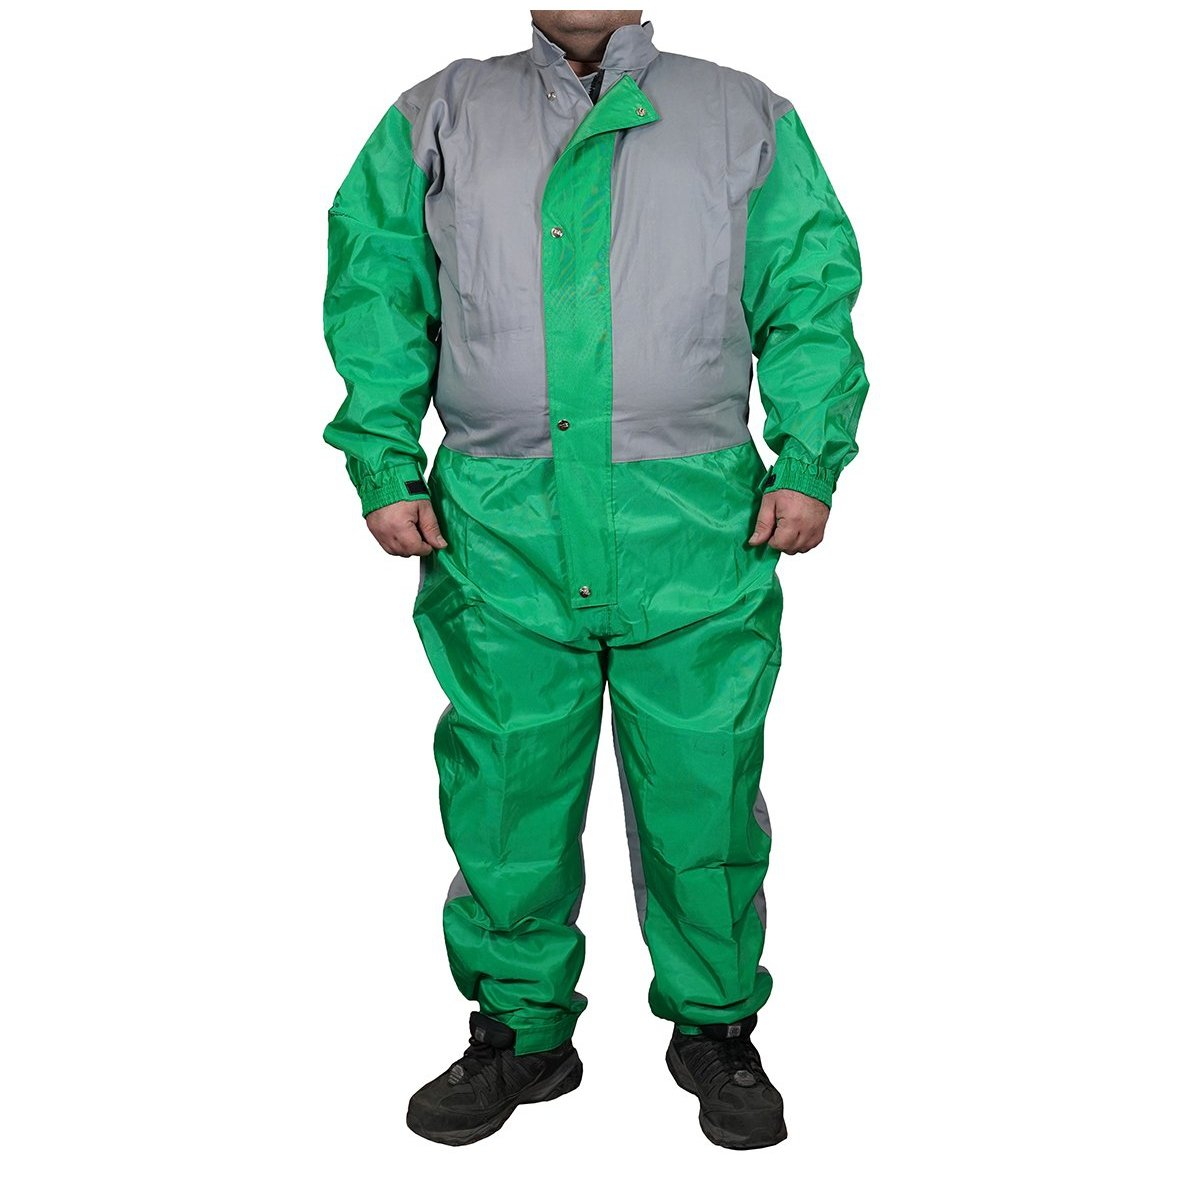 Nova 3® RPB® Heavy Duty Blast Suit 07-755 (Multiple Sizes)